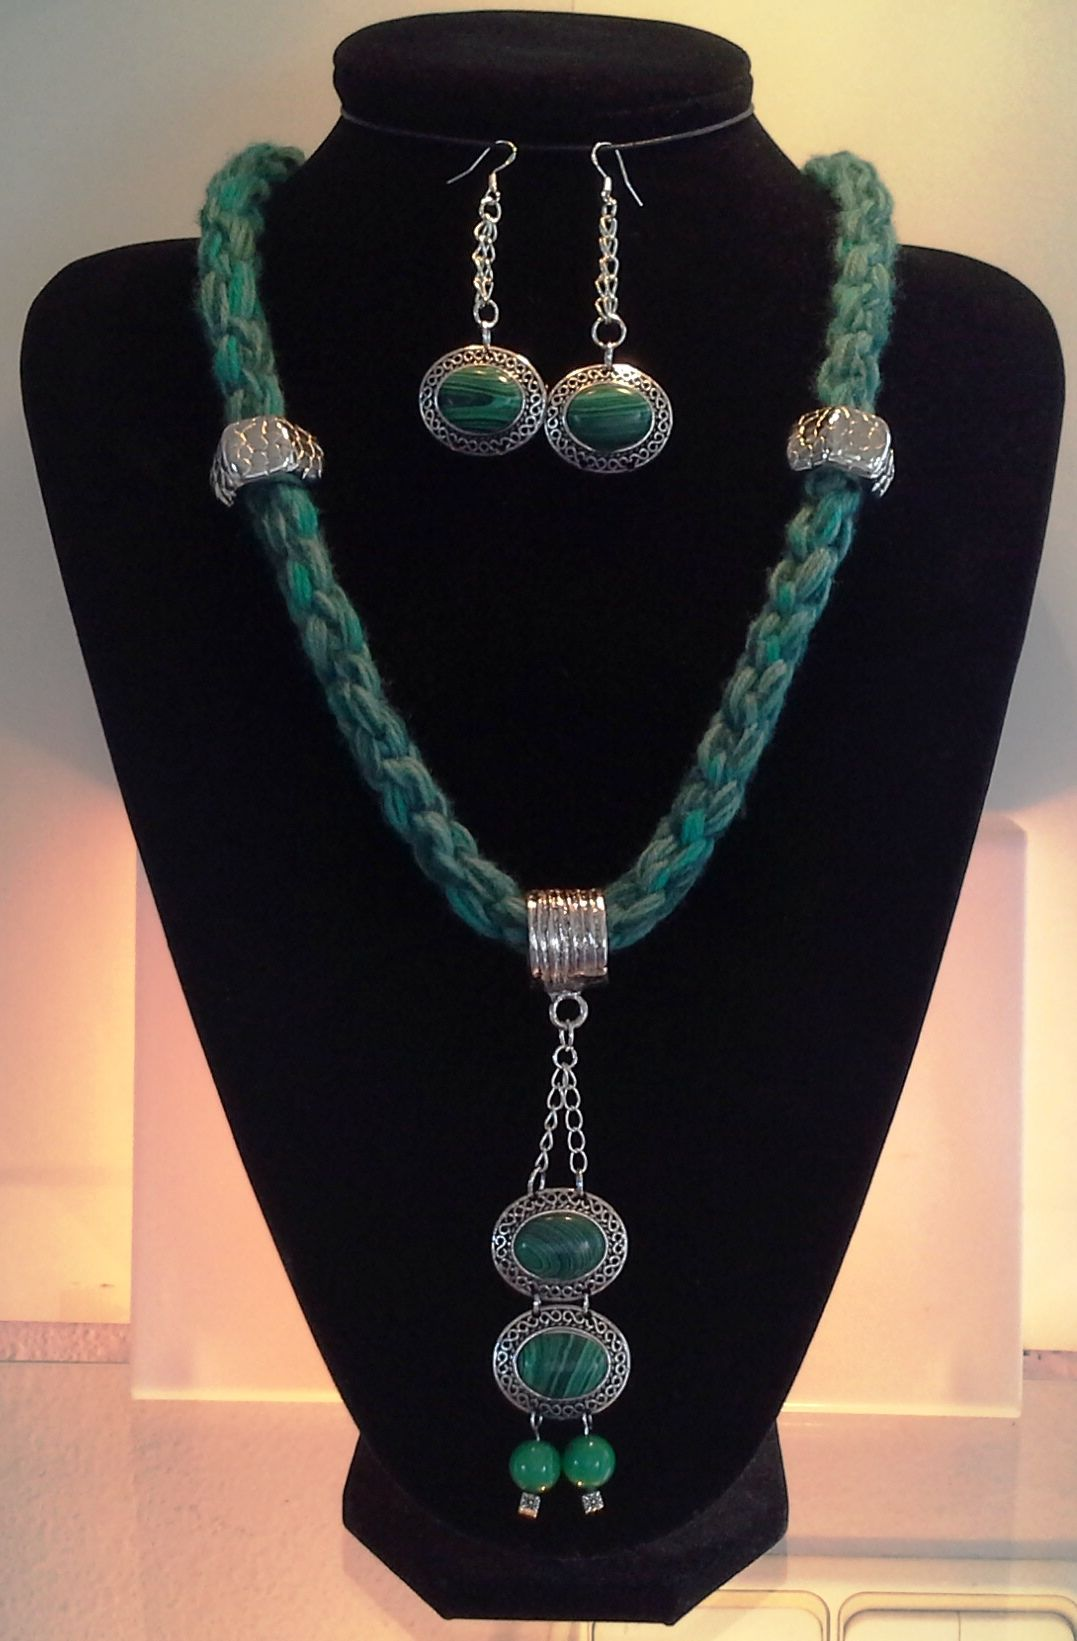 8 warp round honeycomb variegated green virgin wool kumihimo braid necklace with malachite pendant n matching earrings